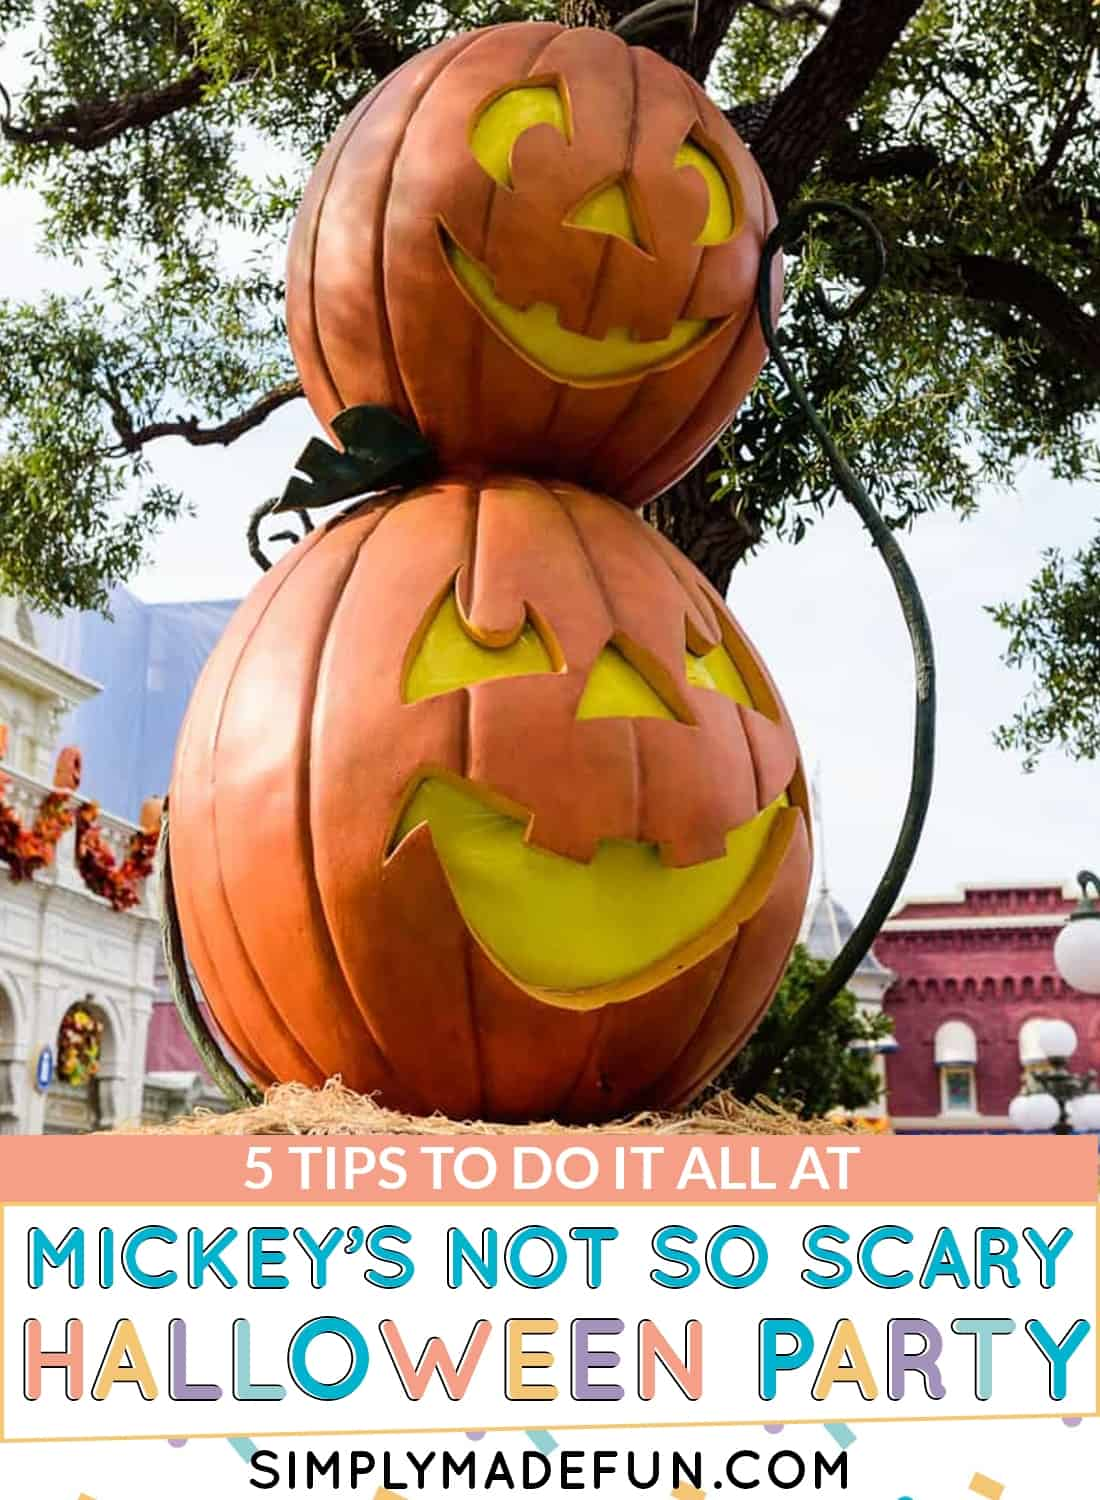 do it all at mickey's not so scary halloween party at walt disney world